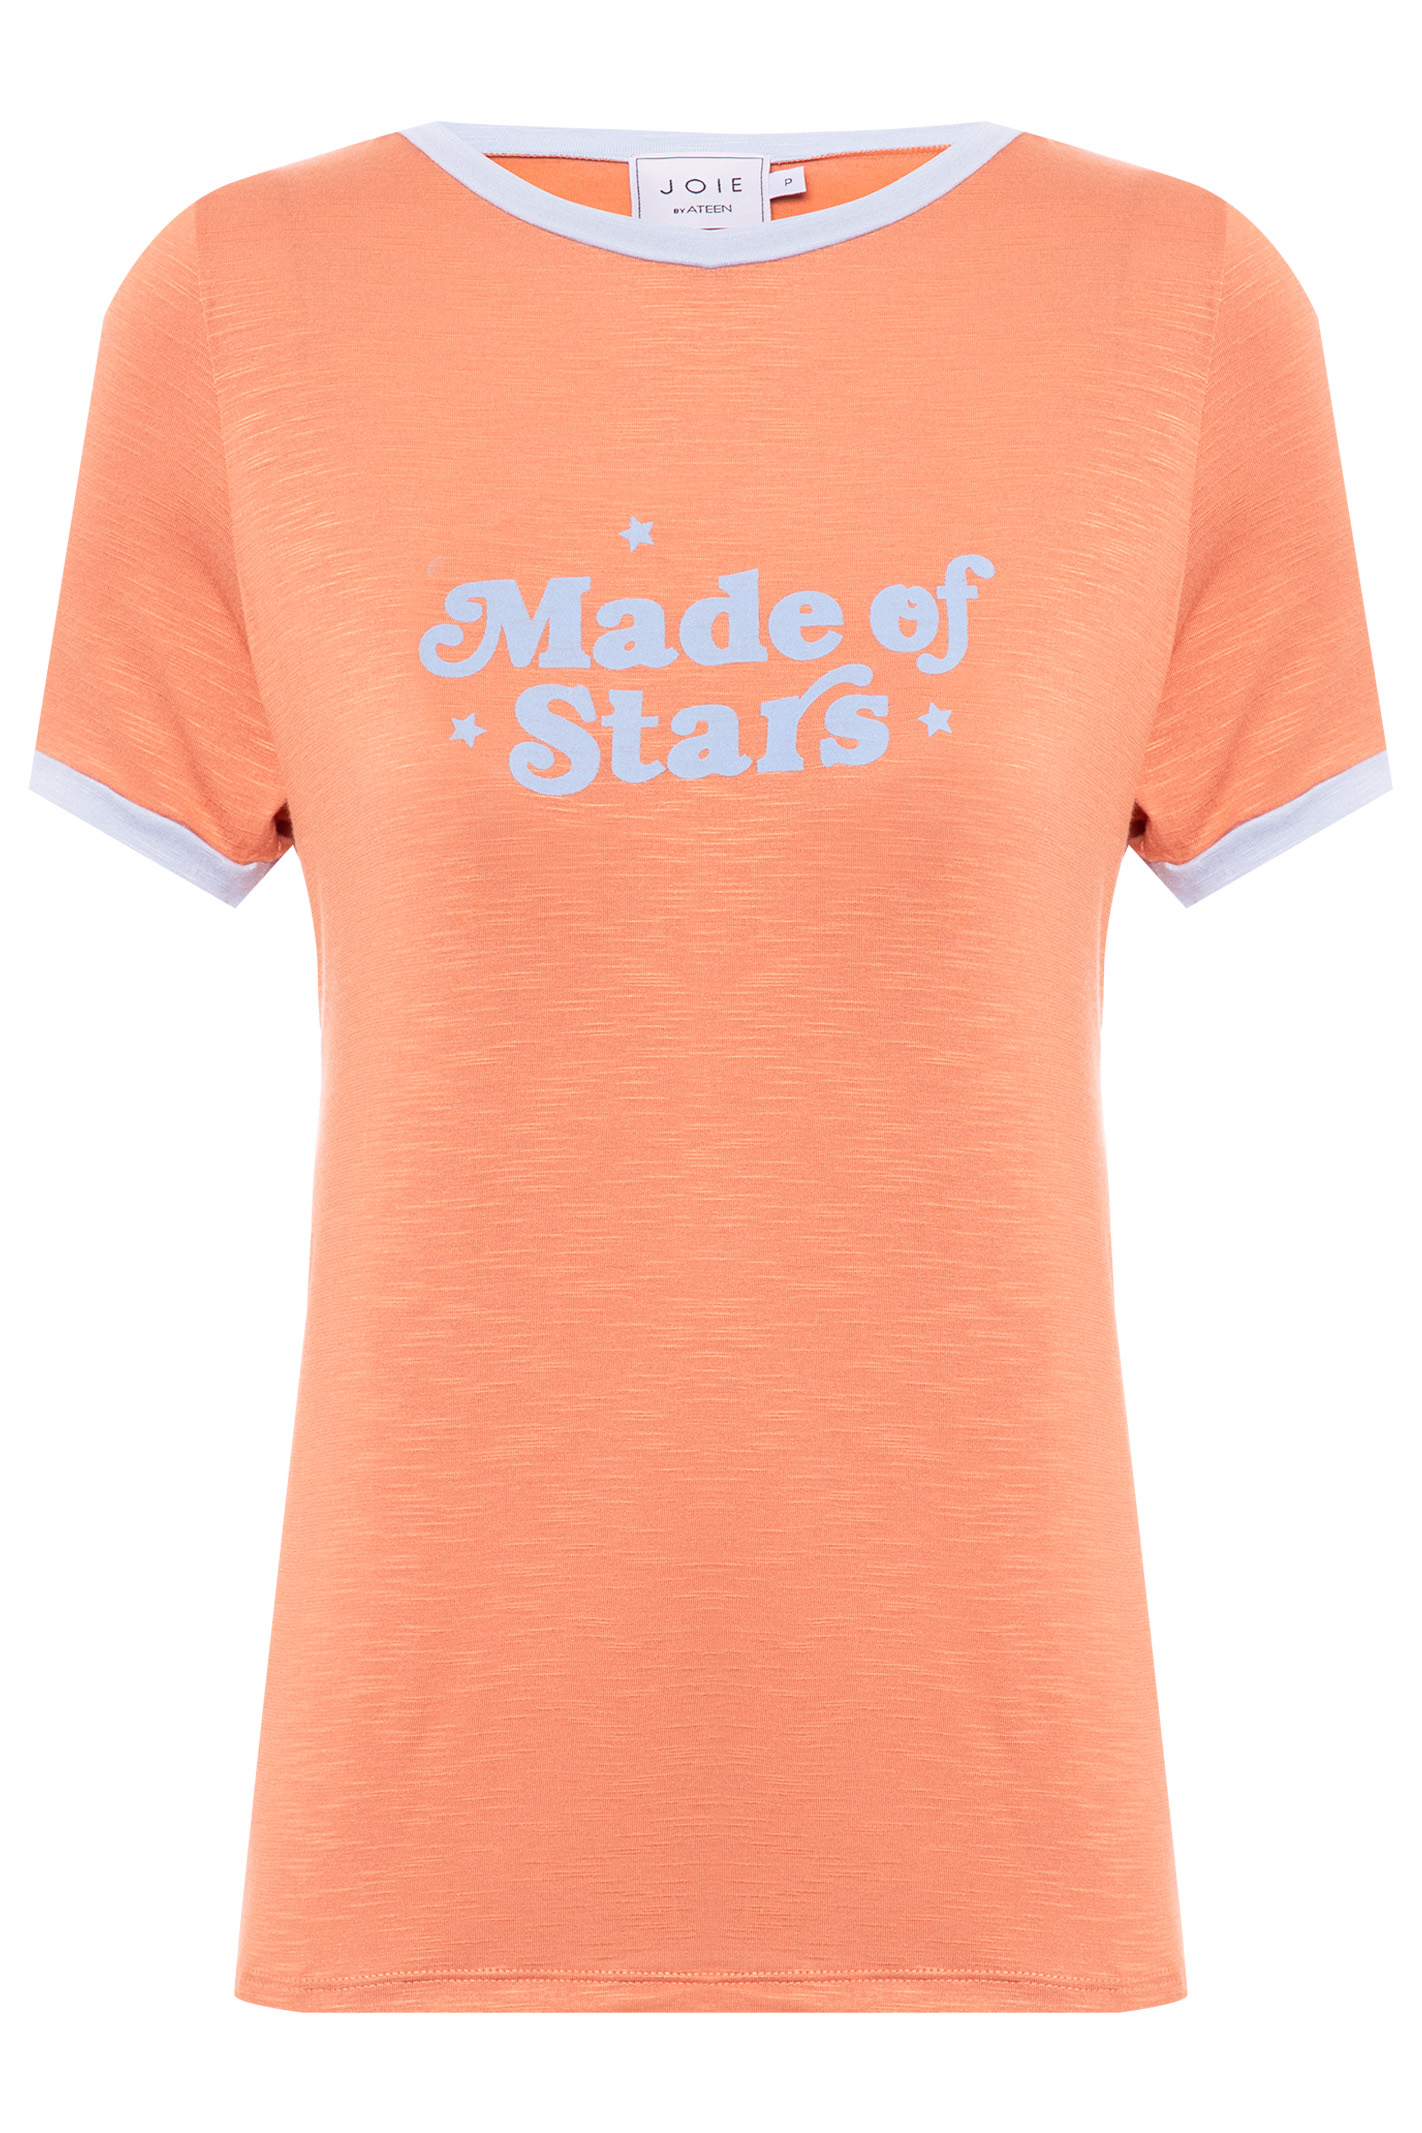 Blusa Silk Made Of Stars Joie By Ateen